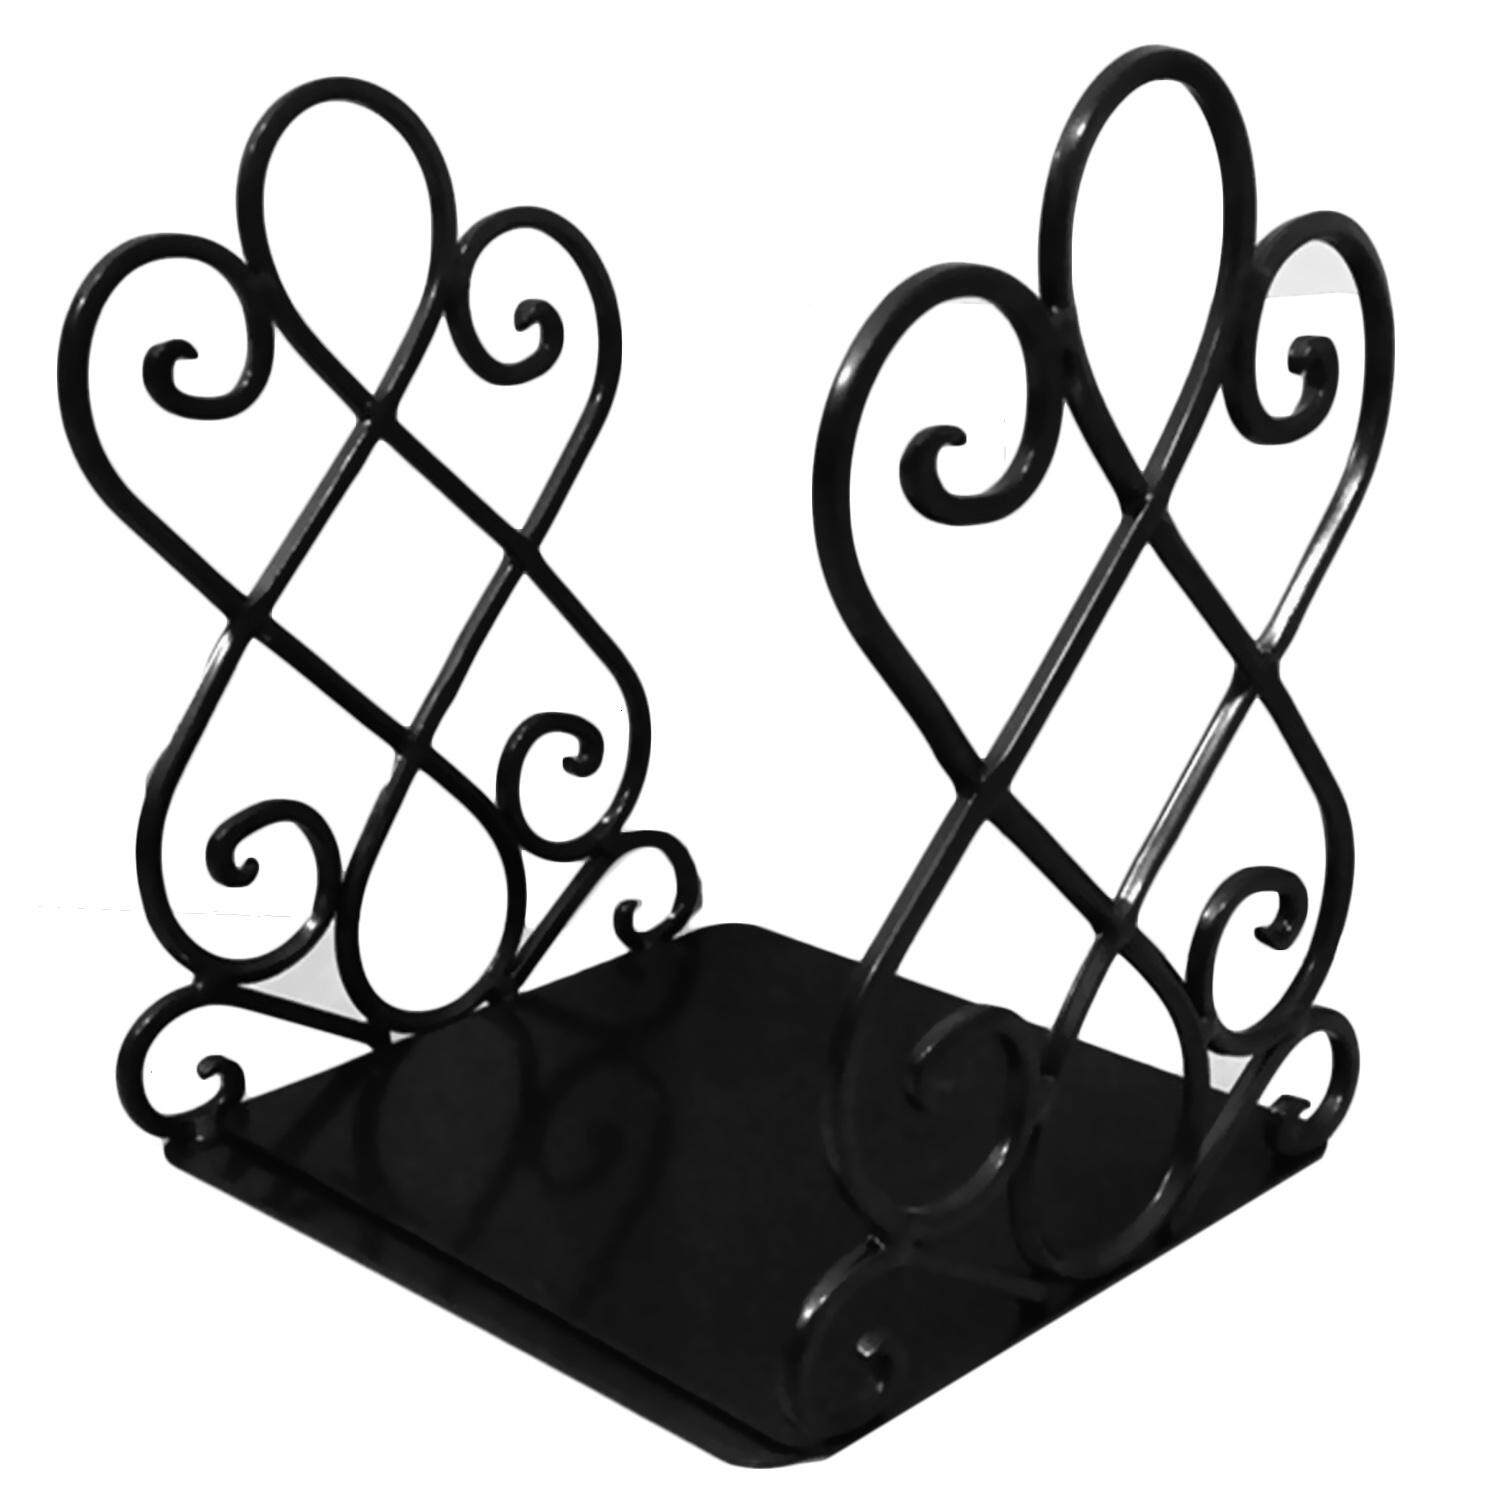 Universal Vintage Style Bookends Heavy Duty Metal Book Ends Holder Supports For Home Office Storage Organizer Accessories By Jelly Store.